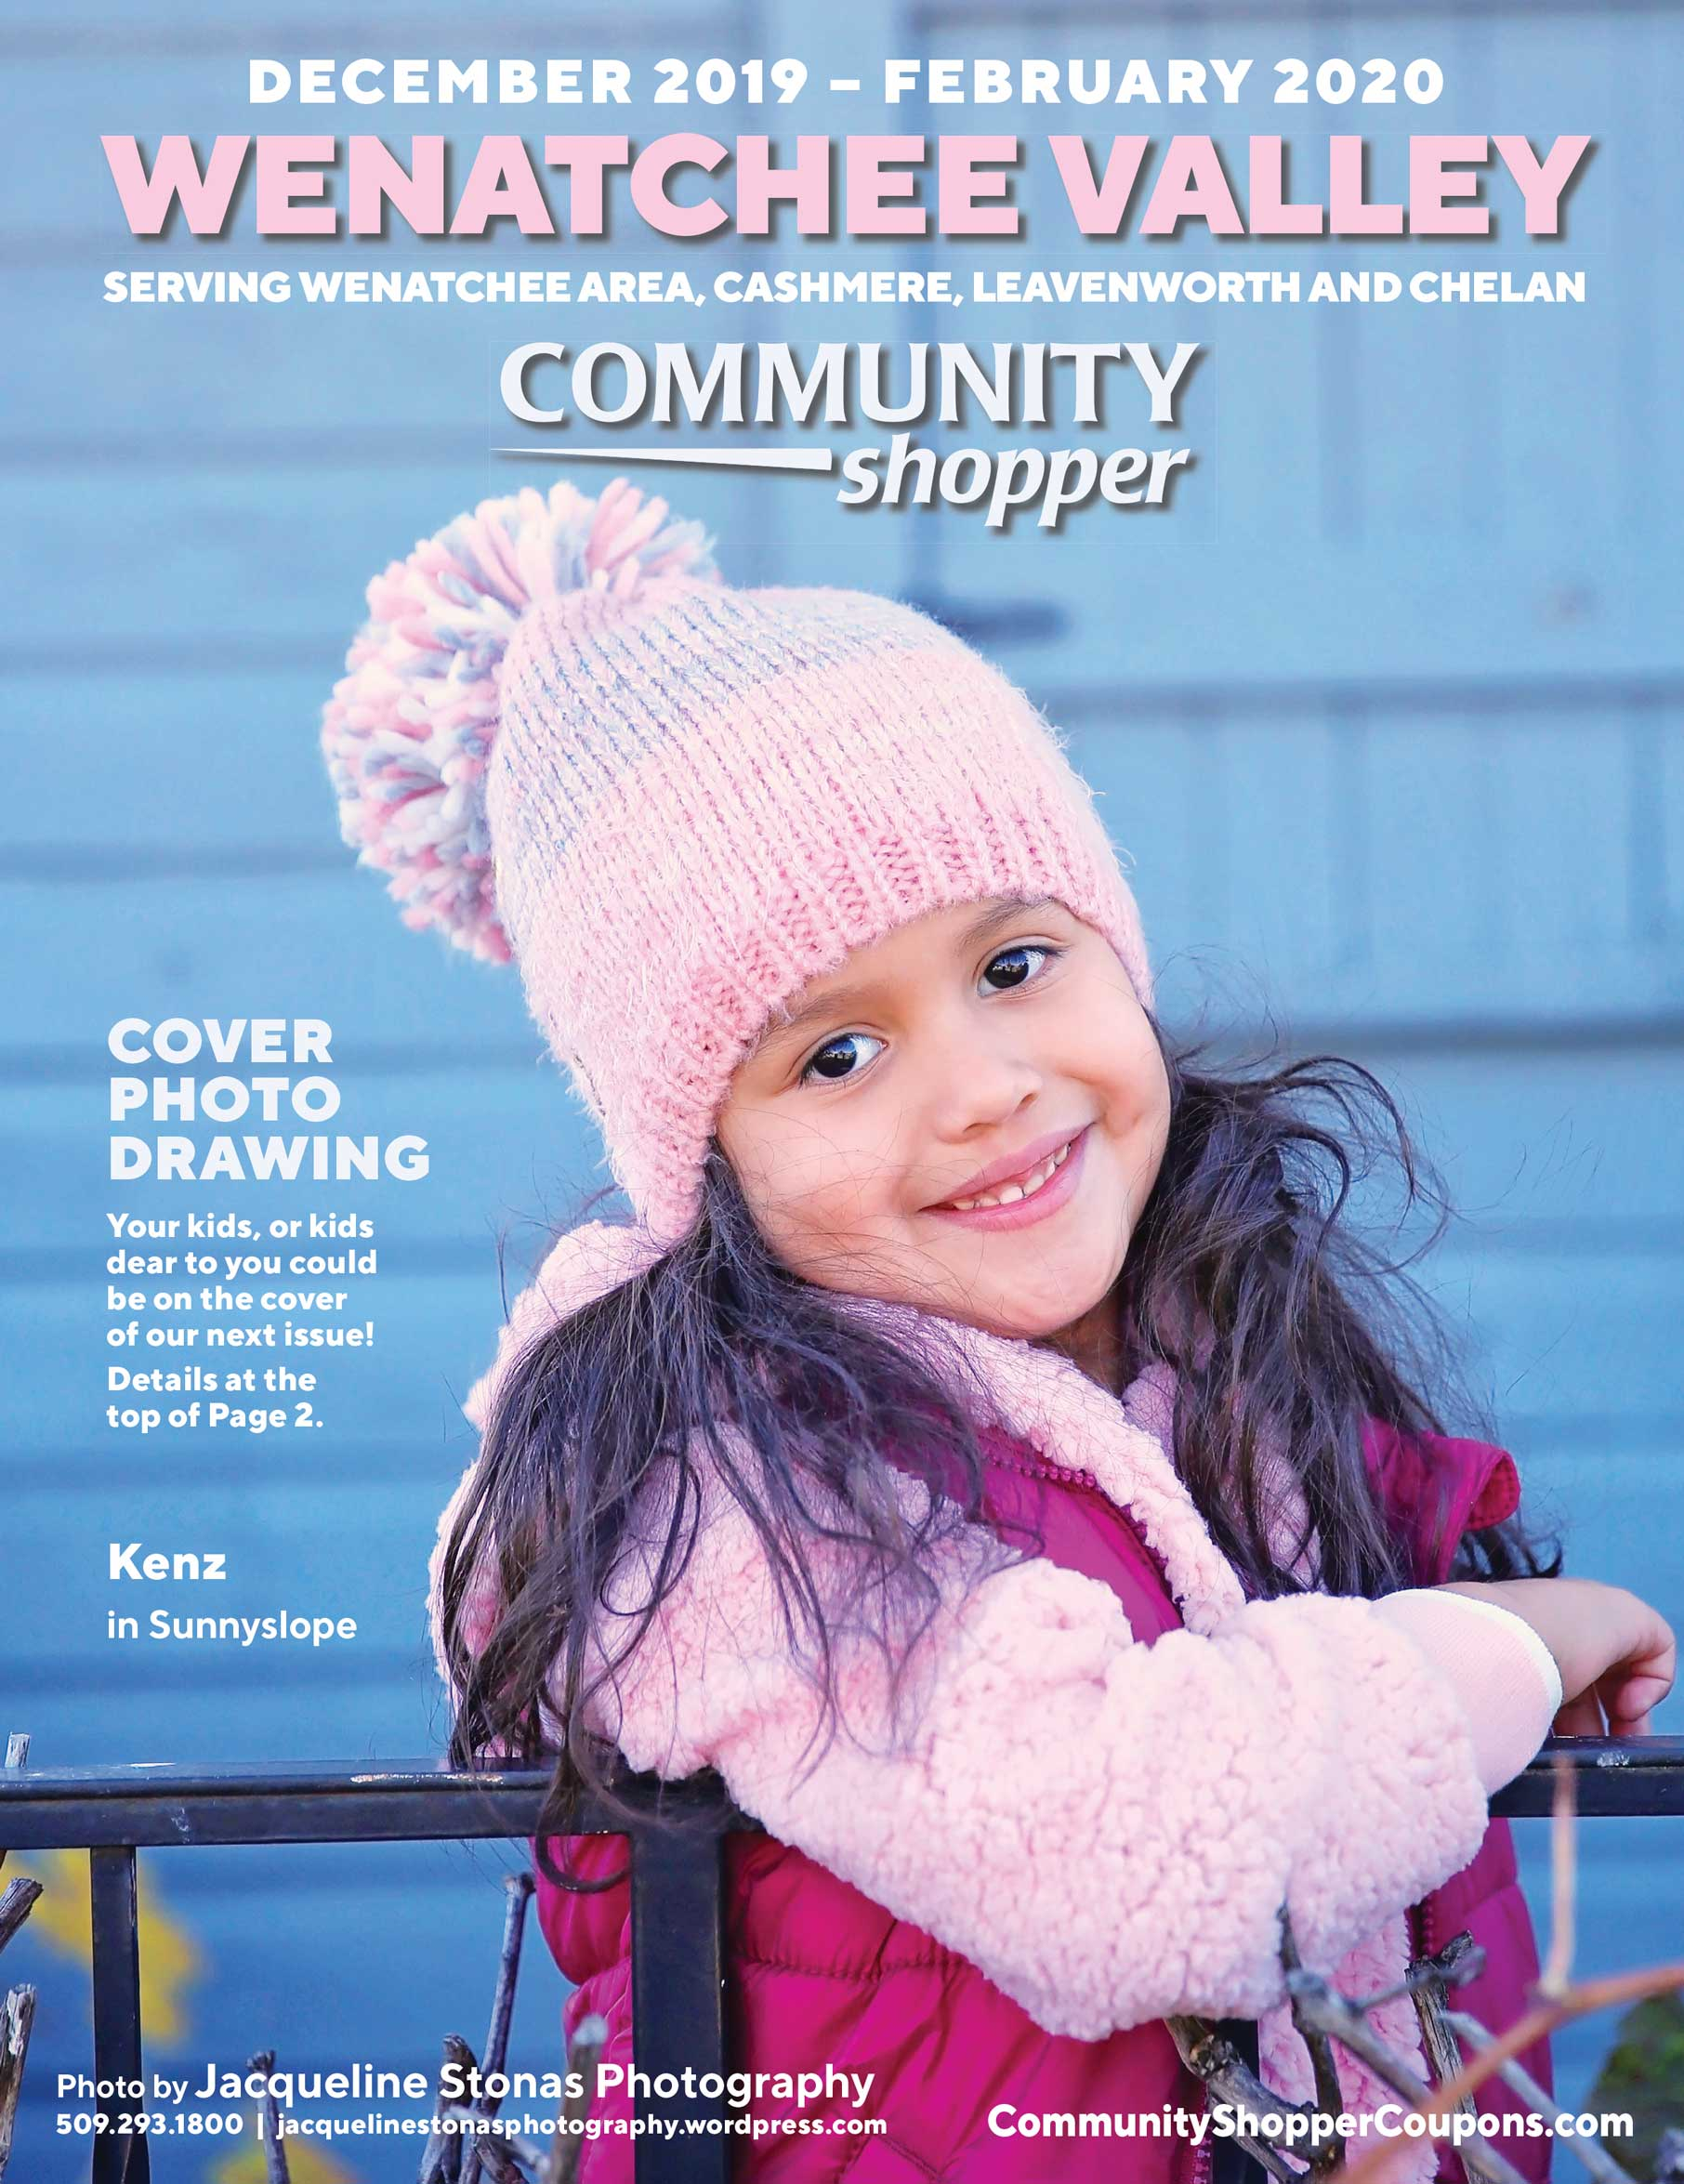 Community Shopper Coupons Online December through February Issue